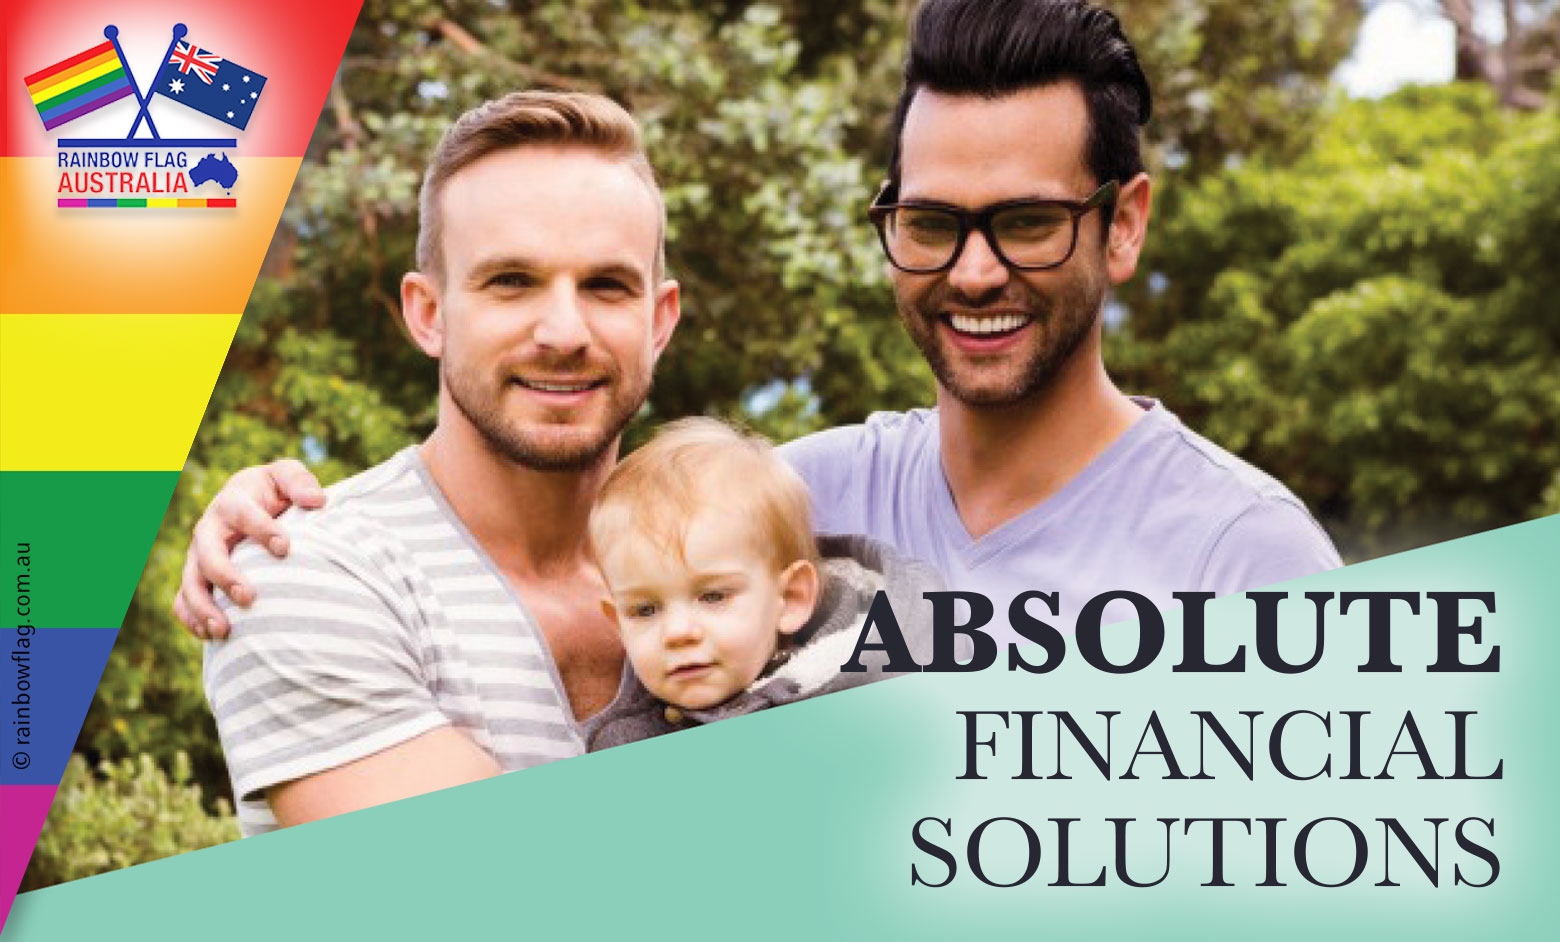 Absolute Financial Solutions